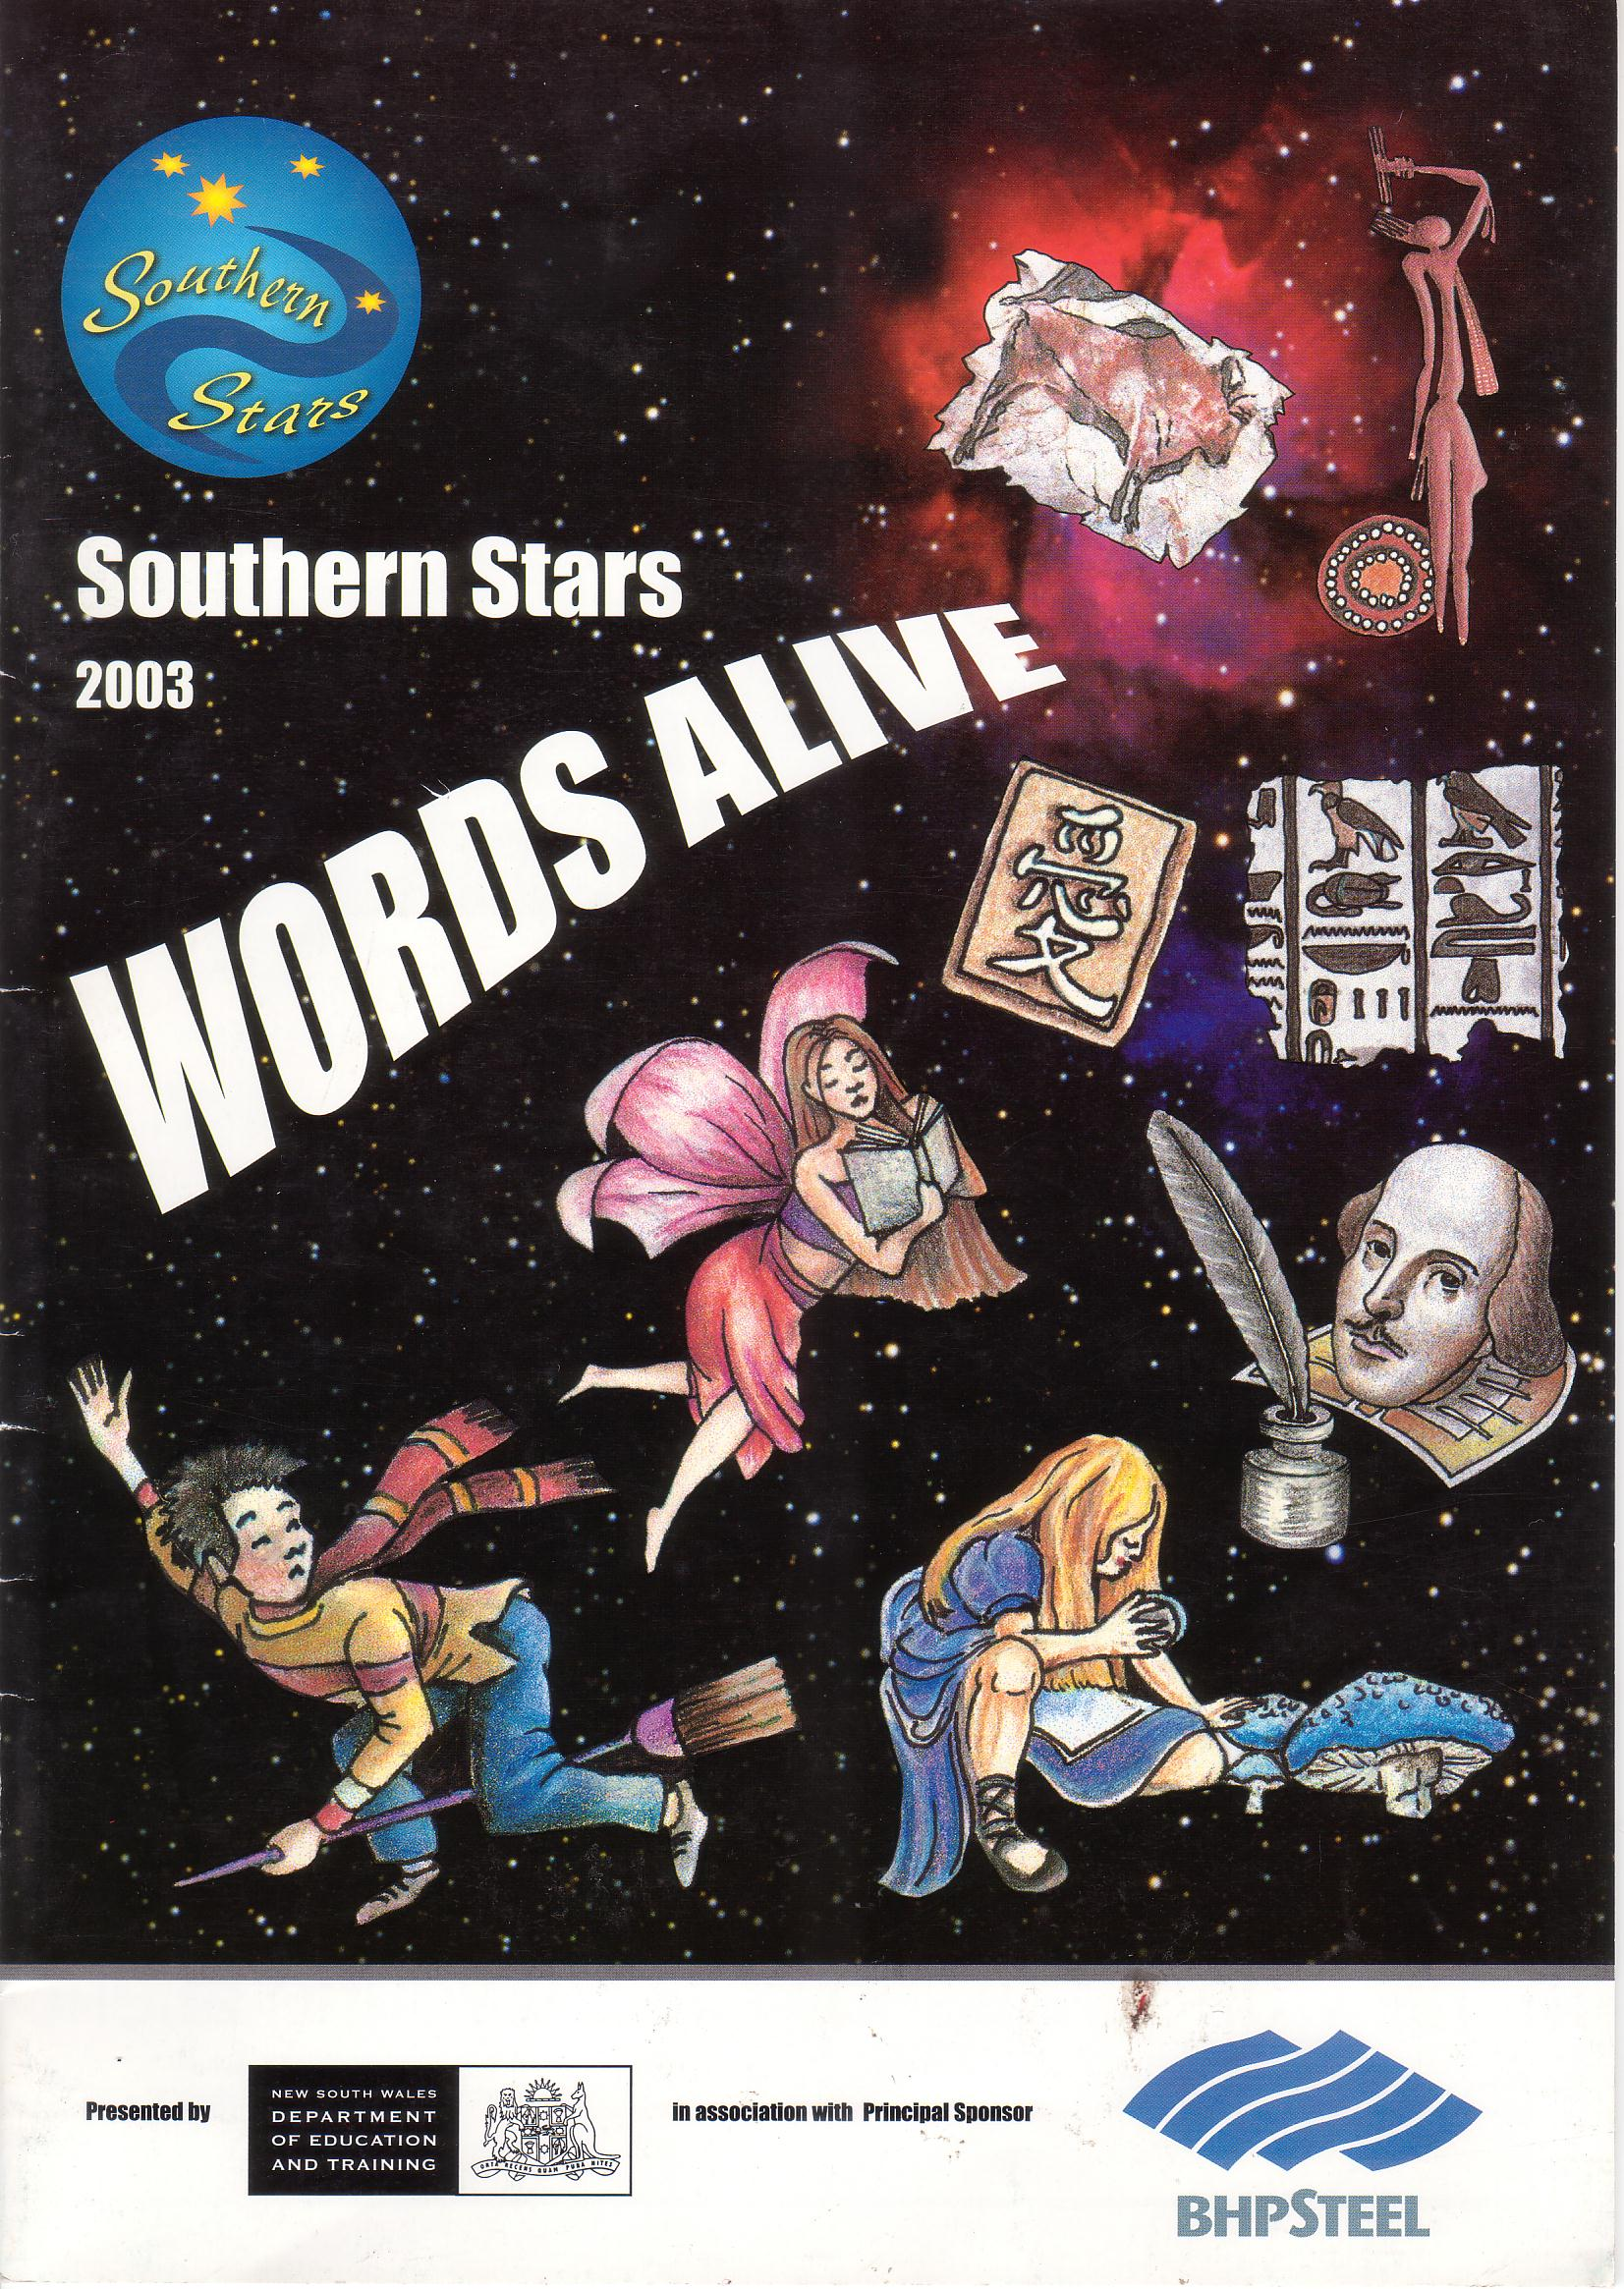 2003 Words Alive poster